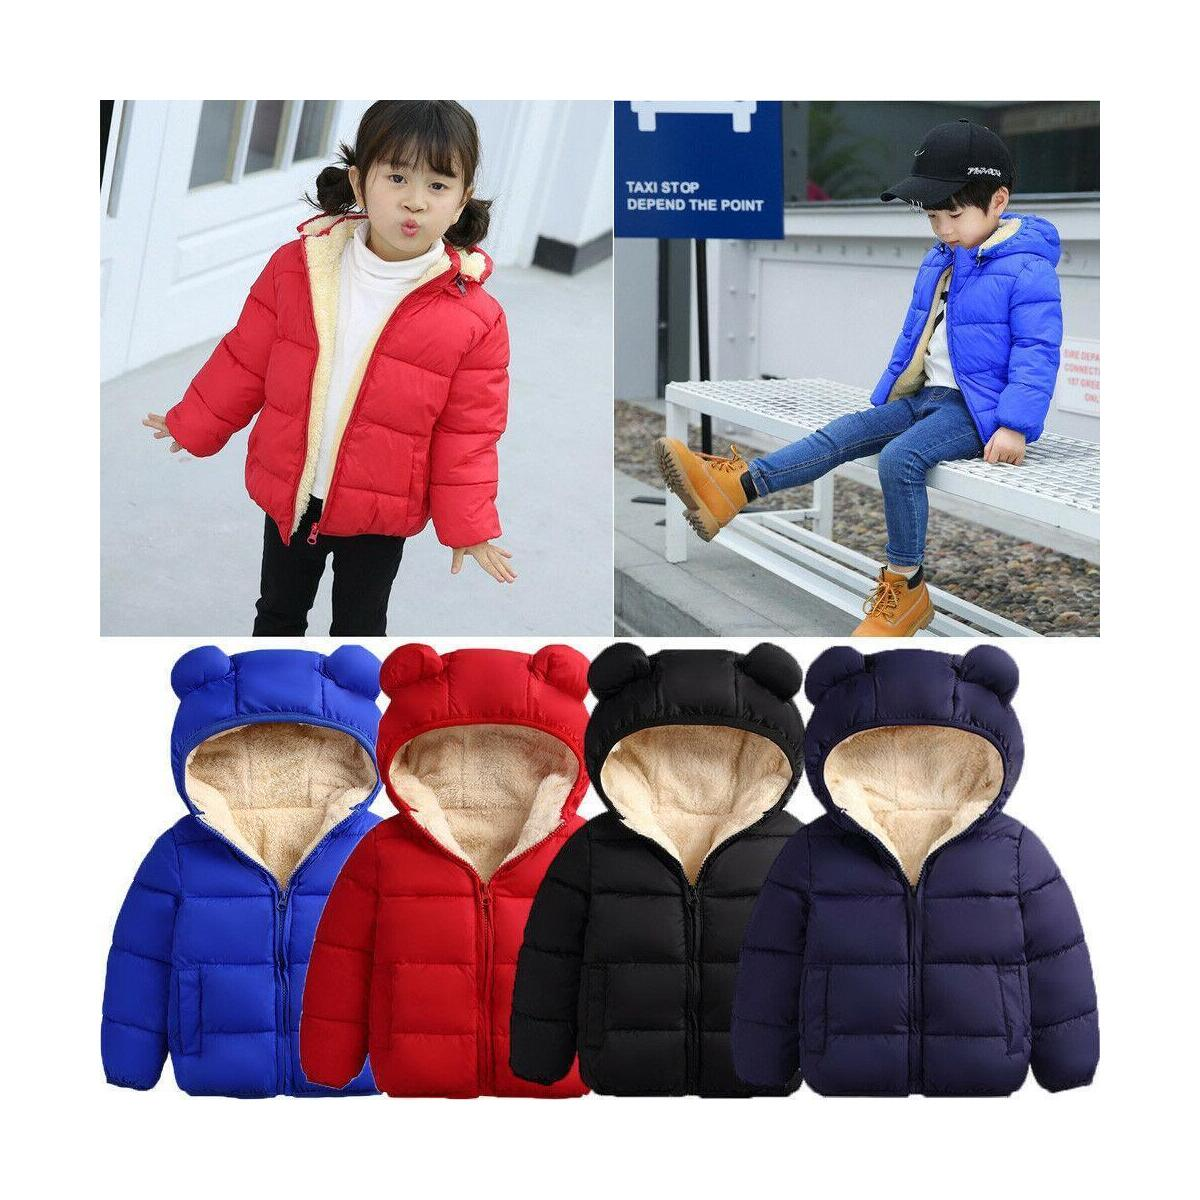 Baby Coat Boys Winter Jackets For Children Hooded Coats Infant Coats Newborn Clothes Kids Snowsuit Thicken Clothes